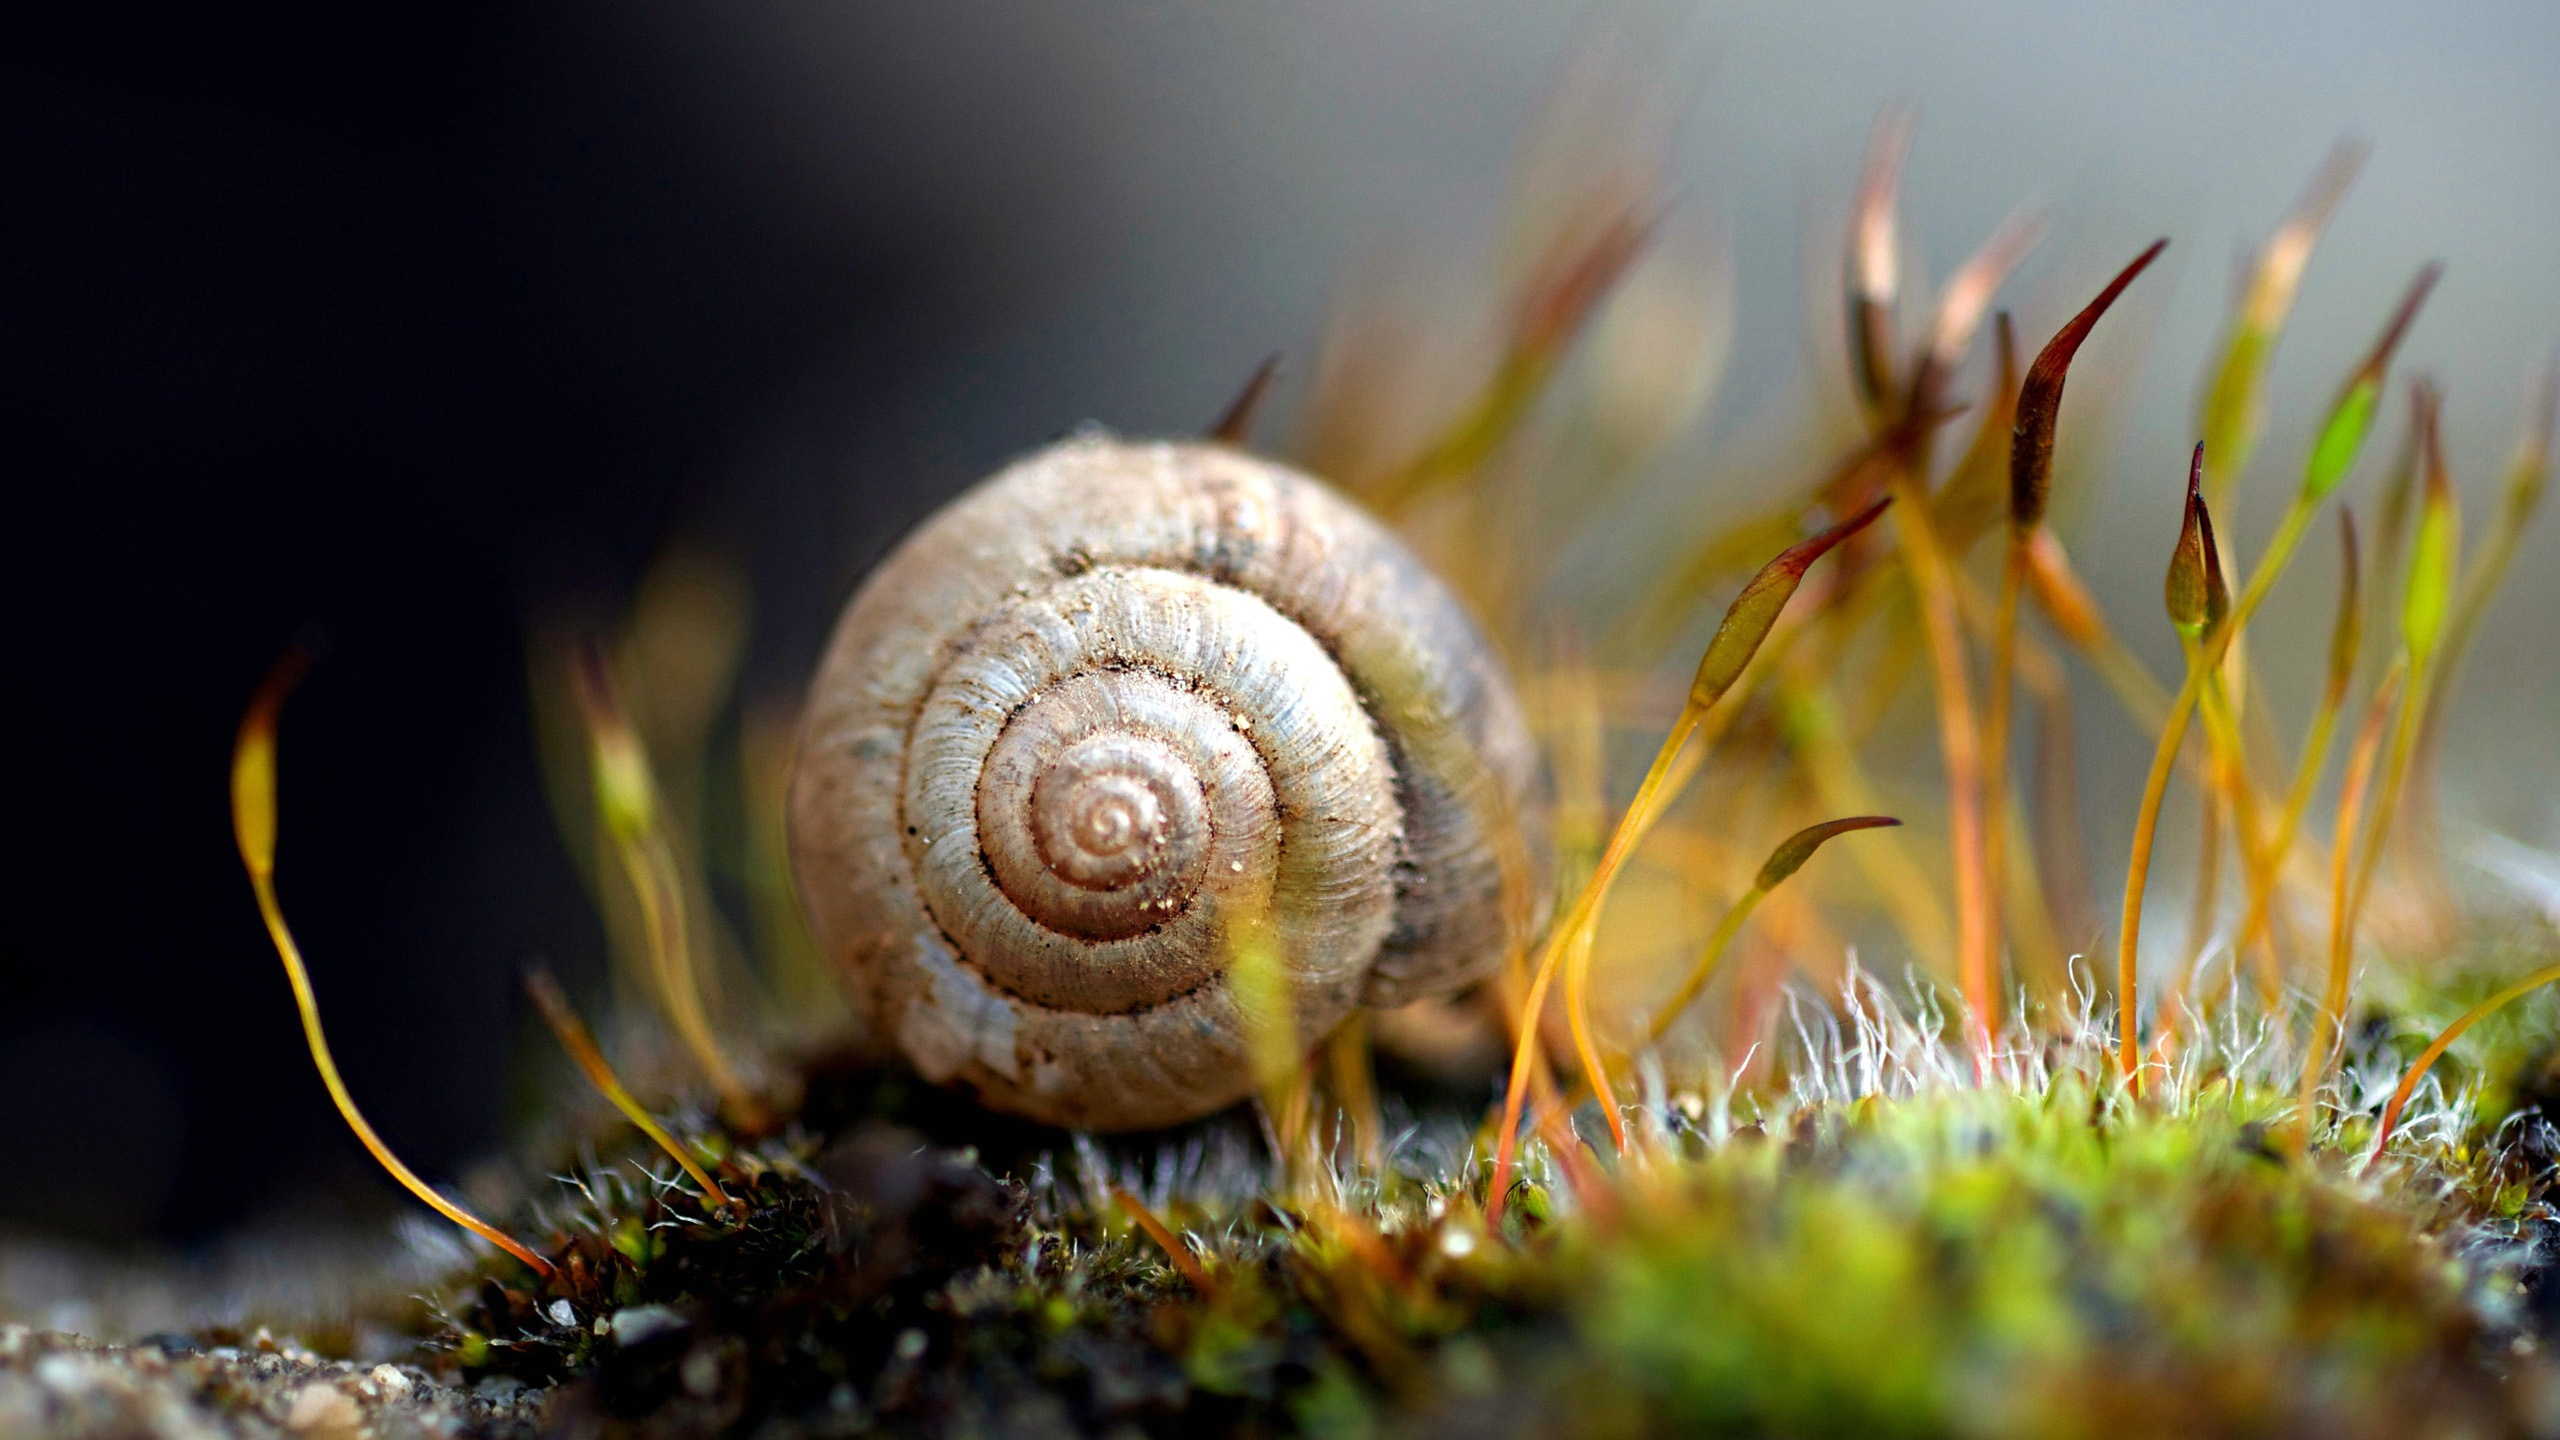 Wallpaper Snail 2560x1600 HD Picture, Image